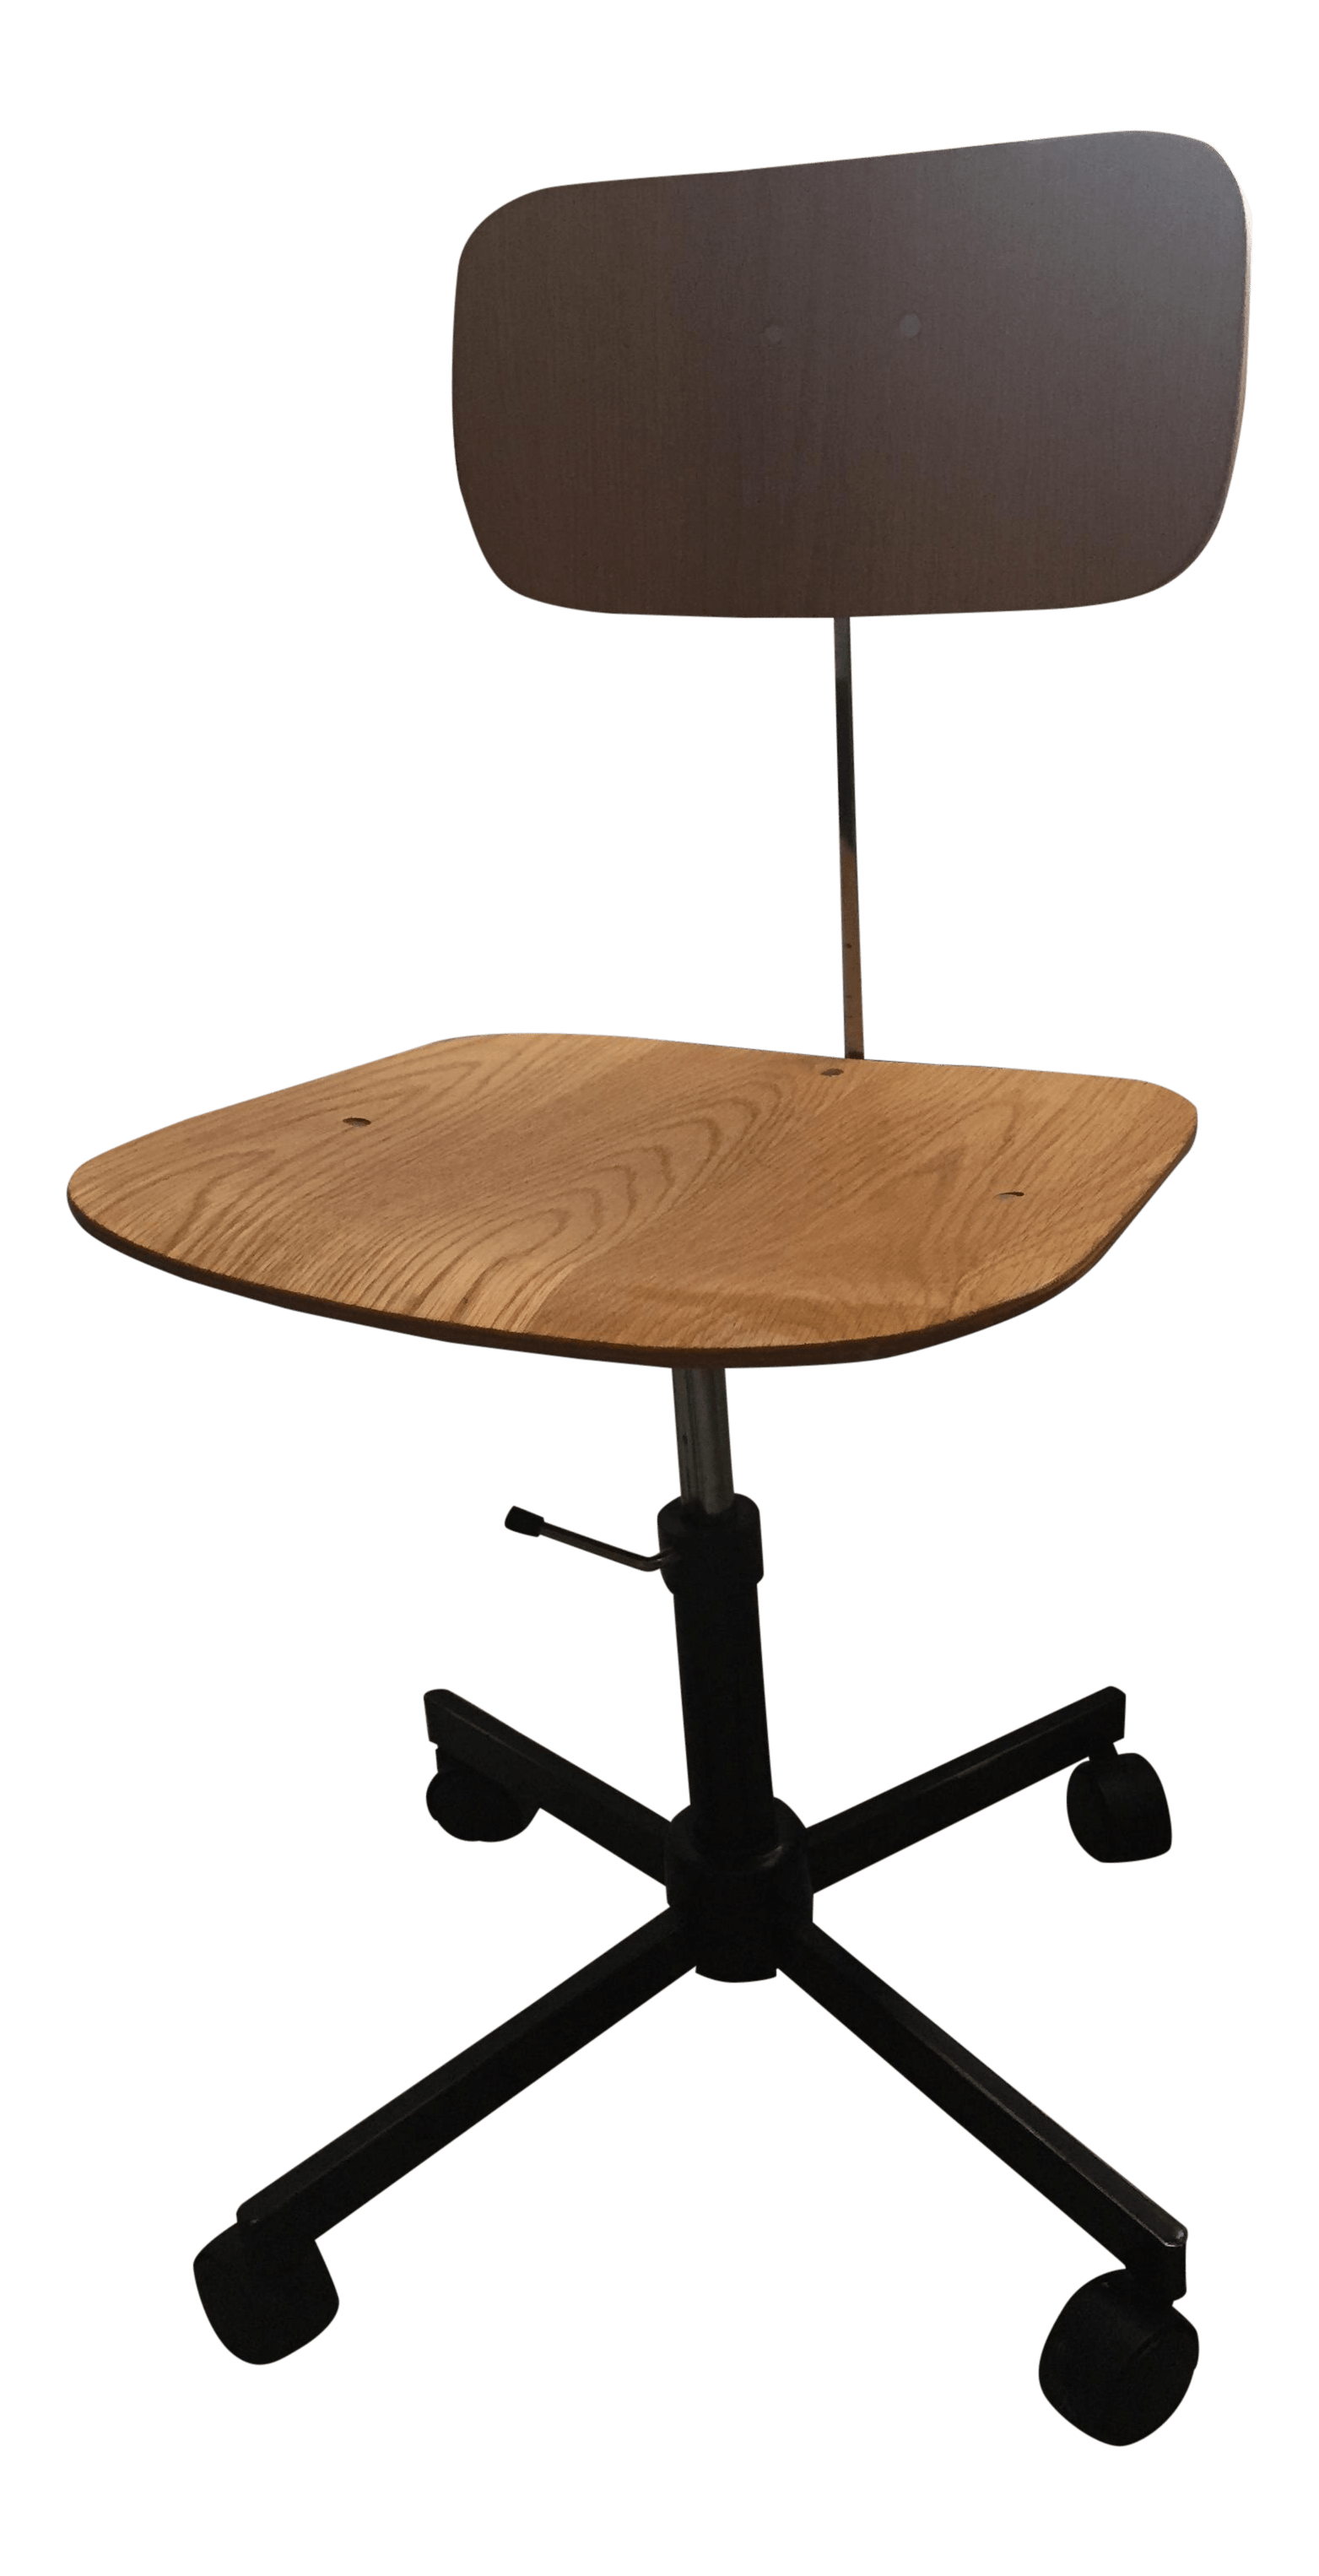 desk chair made portable camping chairs vintage swivel office by rabami stole chairish for sale